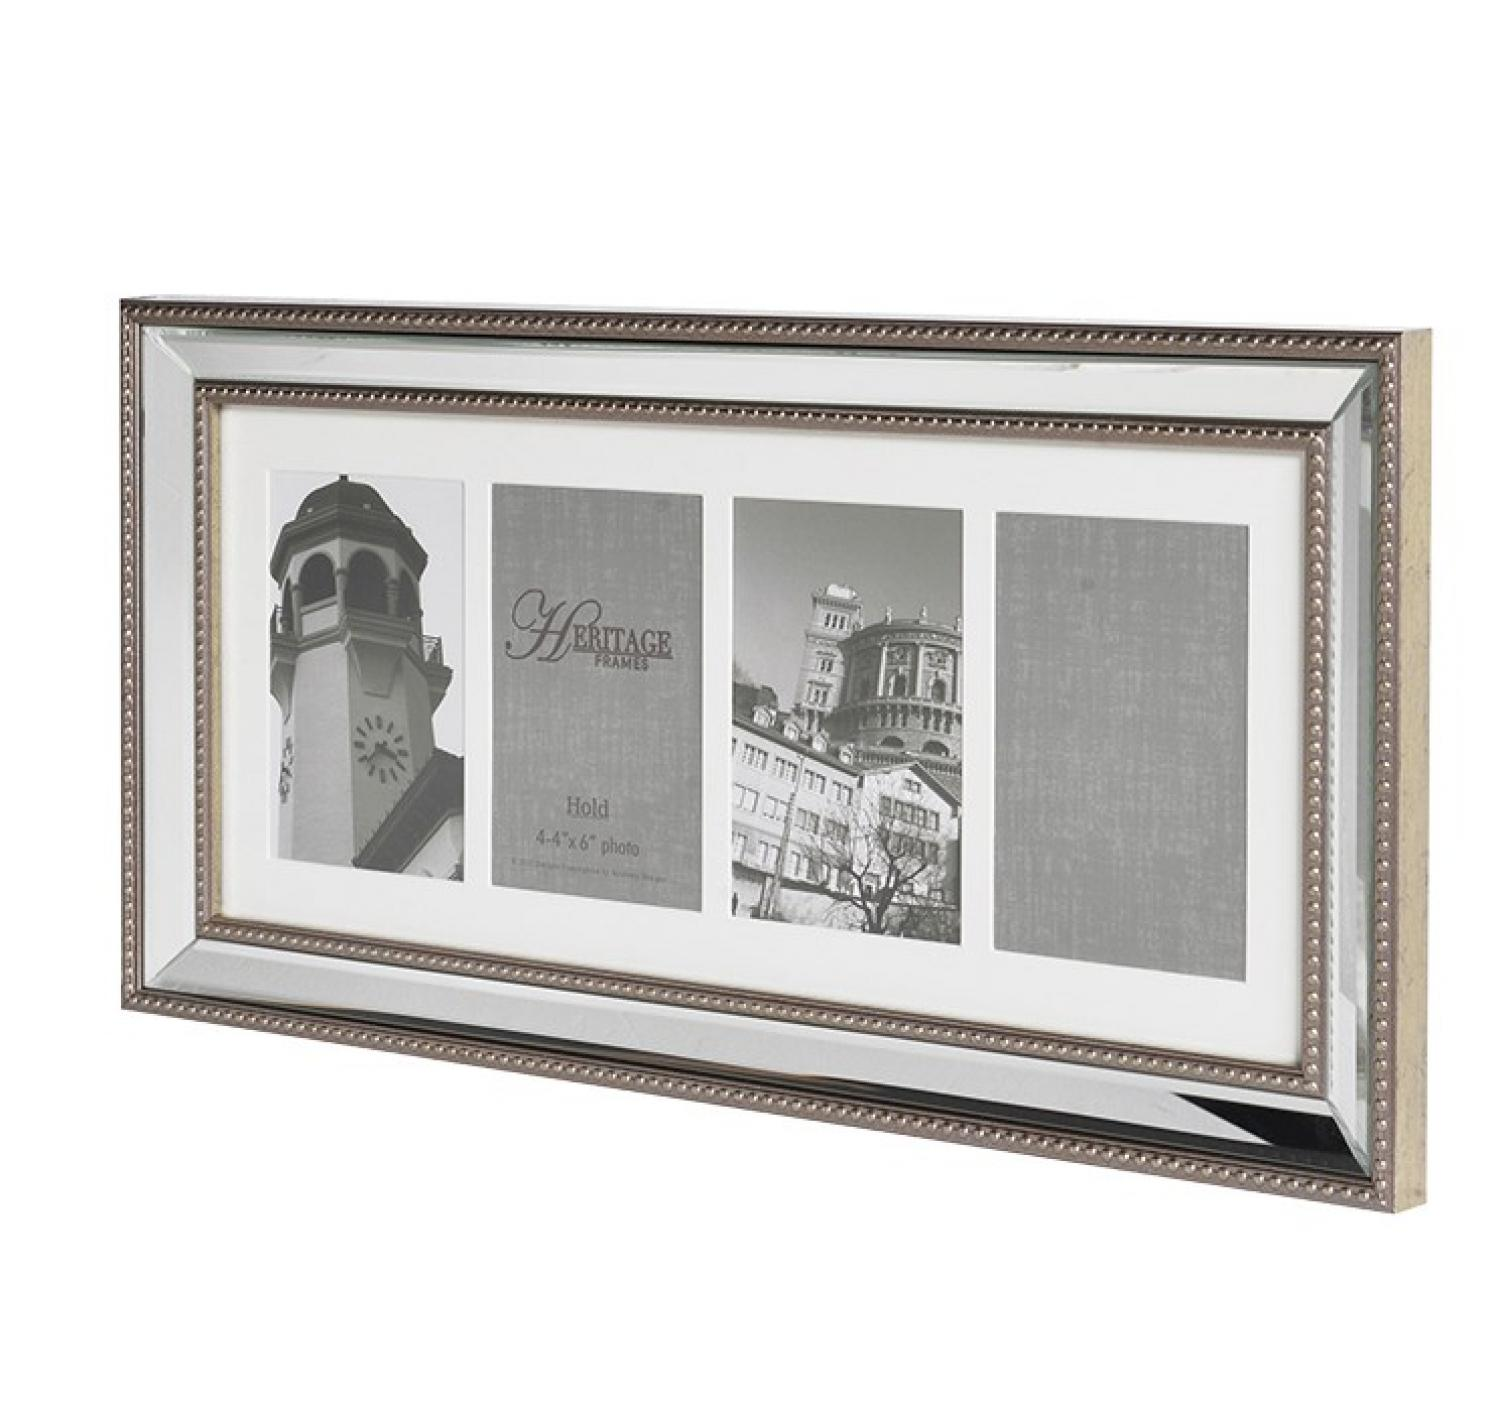 4x mounted 4x6 venetian photo frame